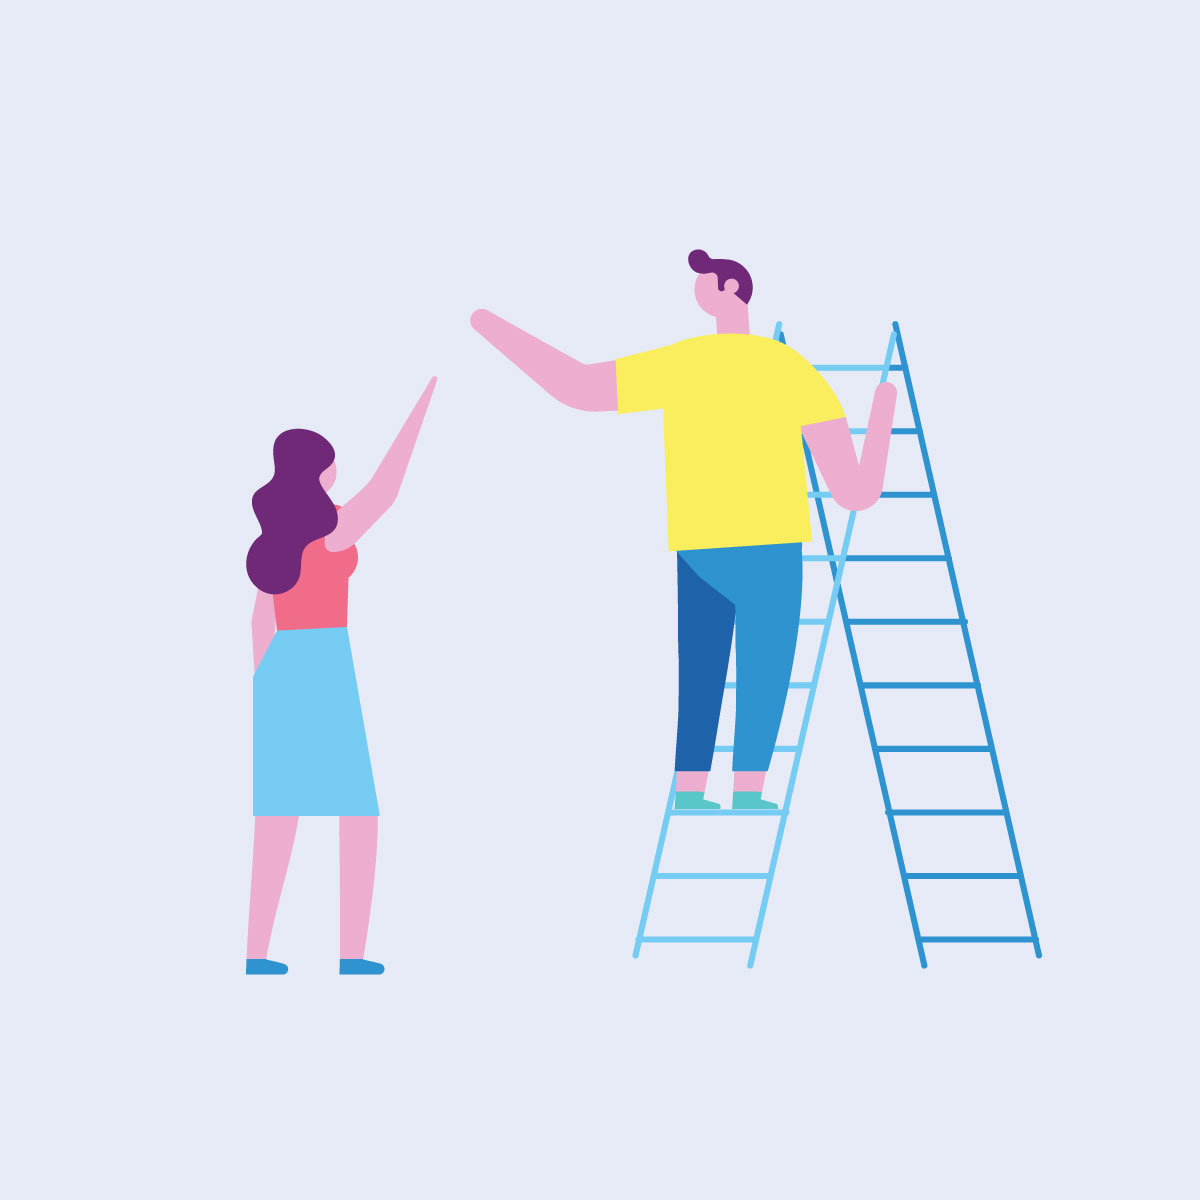 Illustration of woman holding up her arm to a man standing on a ladder, reaching back to the woman.